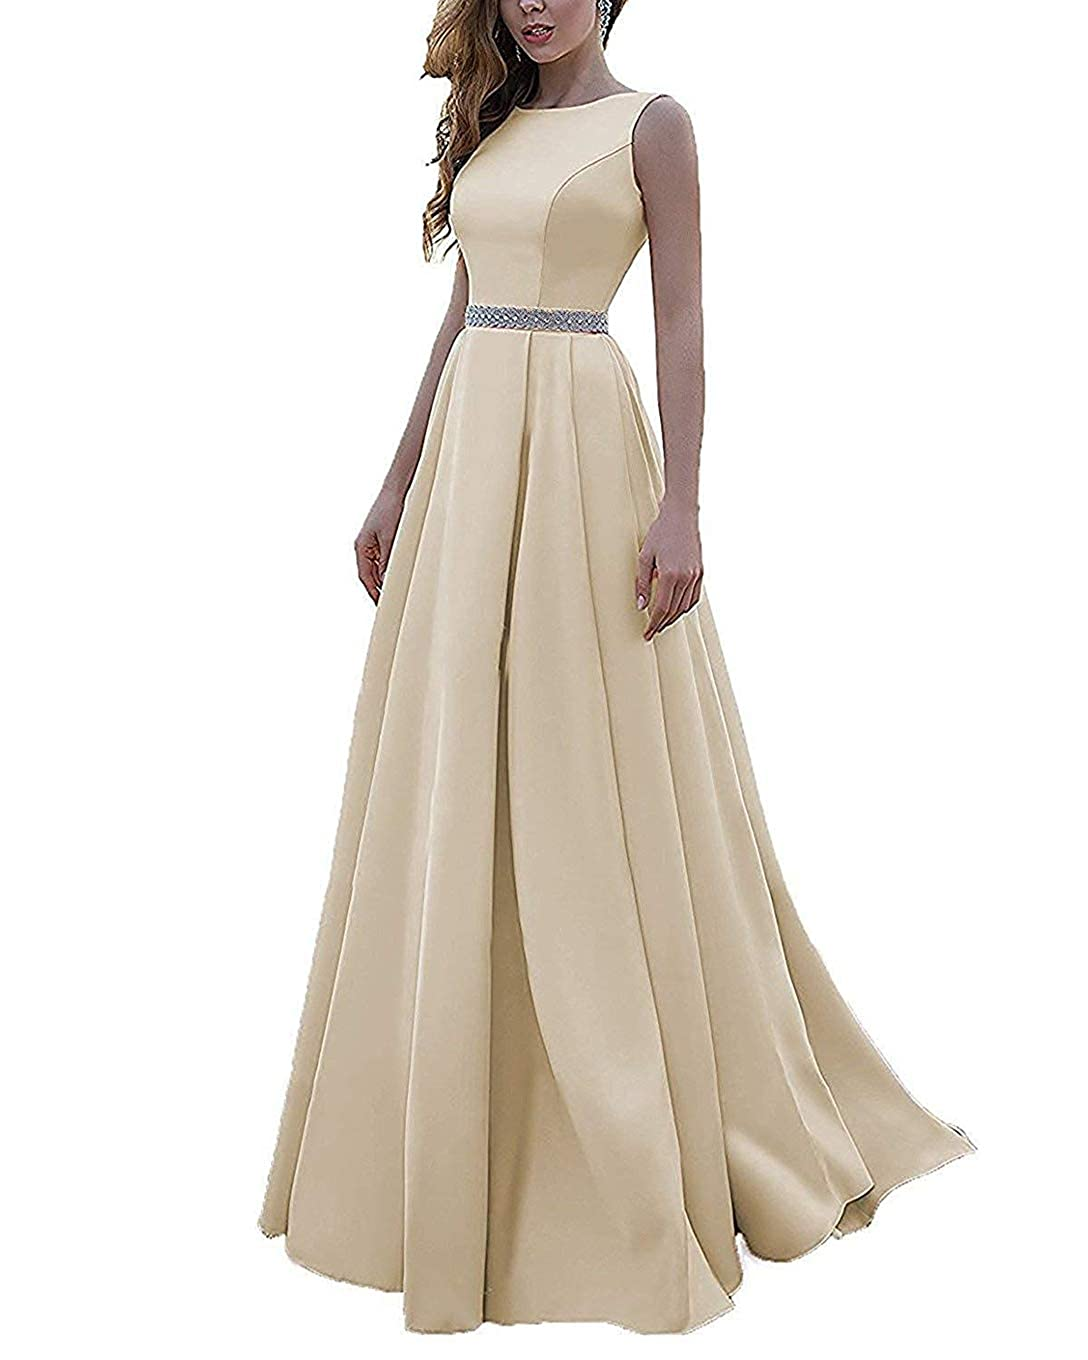 Champagne Beaded Satin Prom Dresses Long with Pockets Jewel Neckline Princess Ball Gown